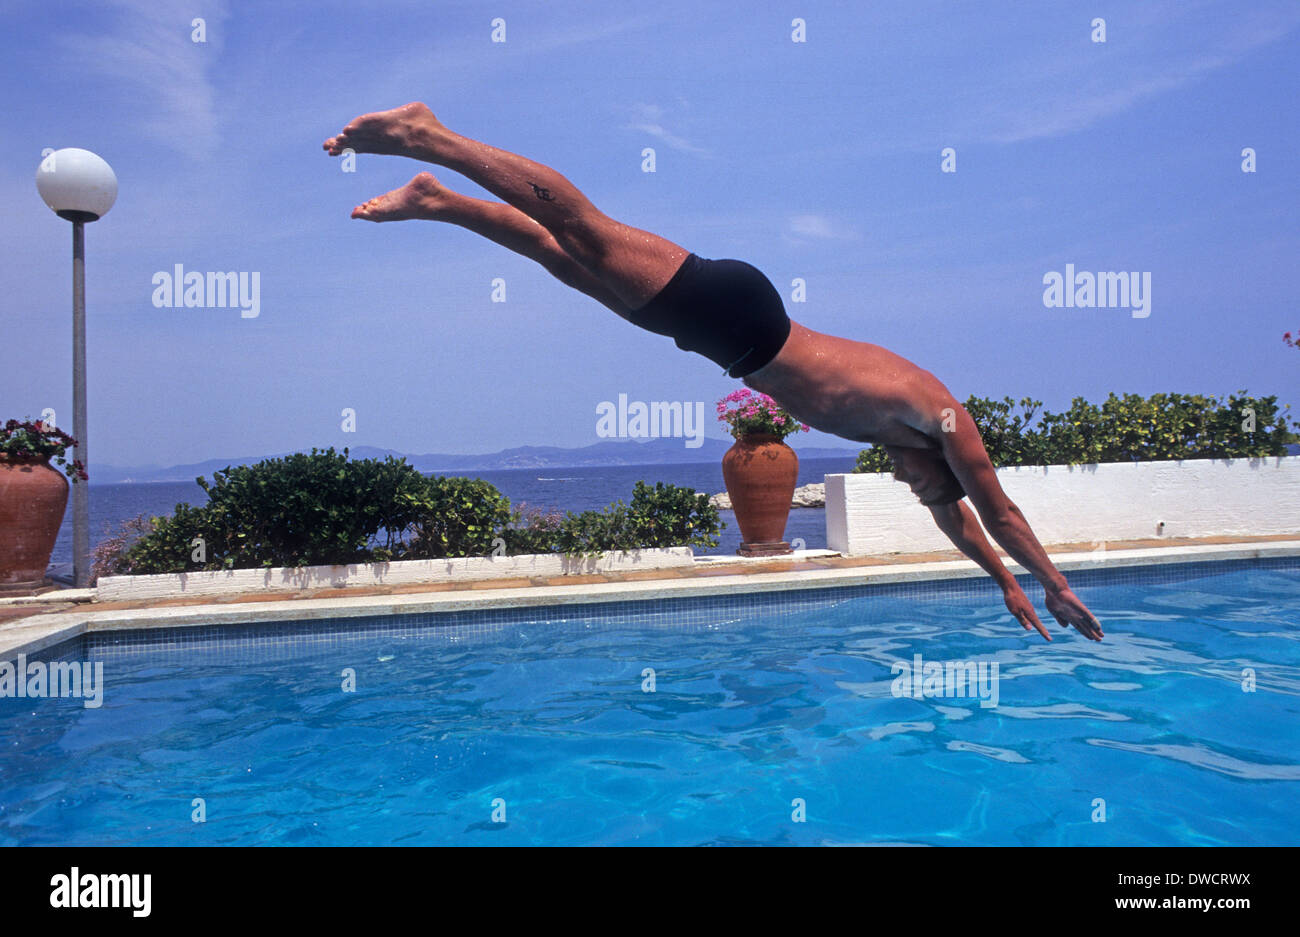 Man Male Diving Into Holiday Swimming Pool Escala Spain